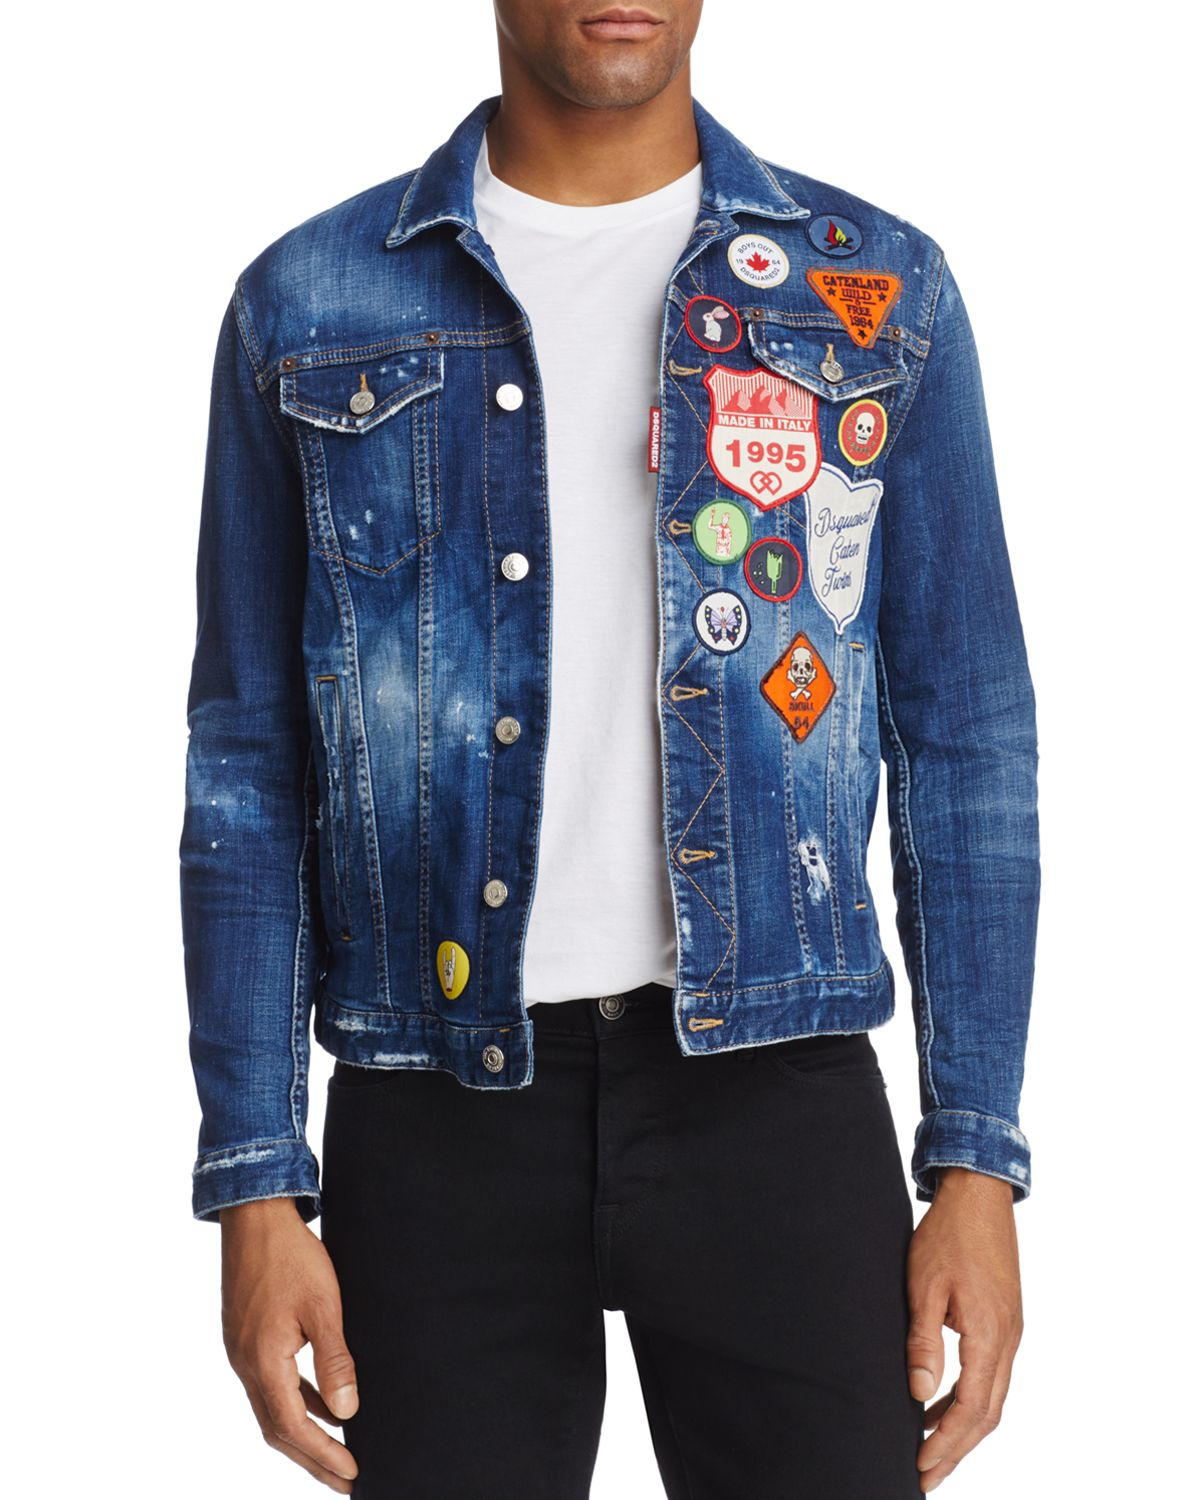 Dan Patch Slim Fit Jean Jacket by Dsquared2